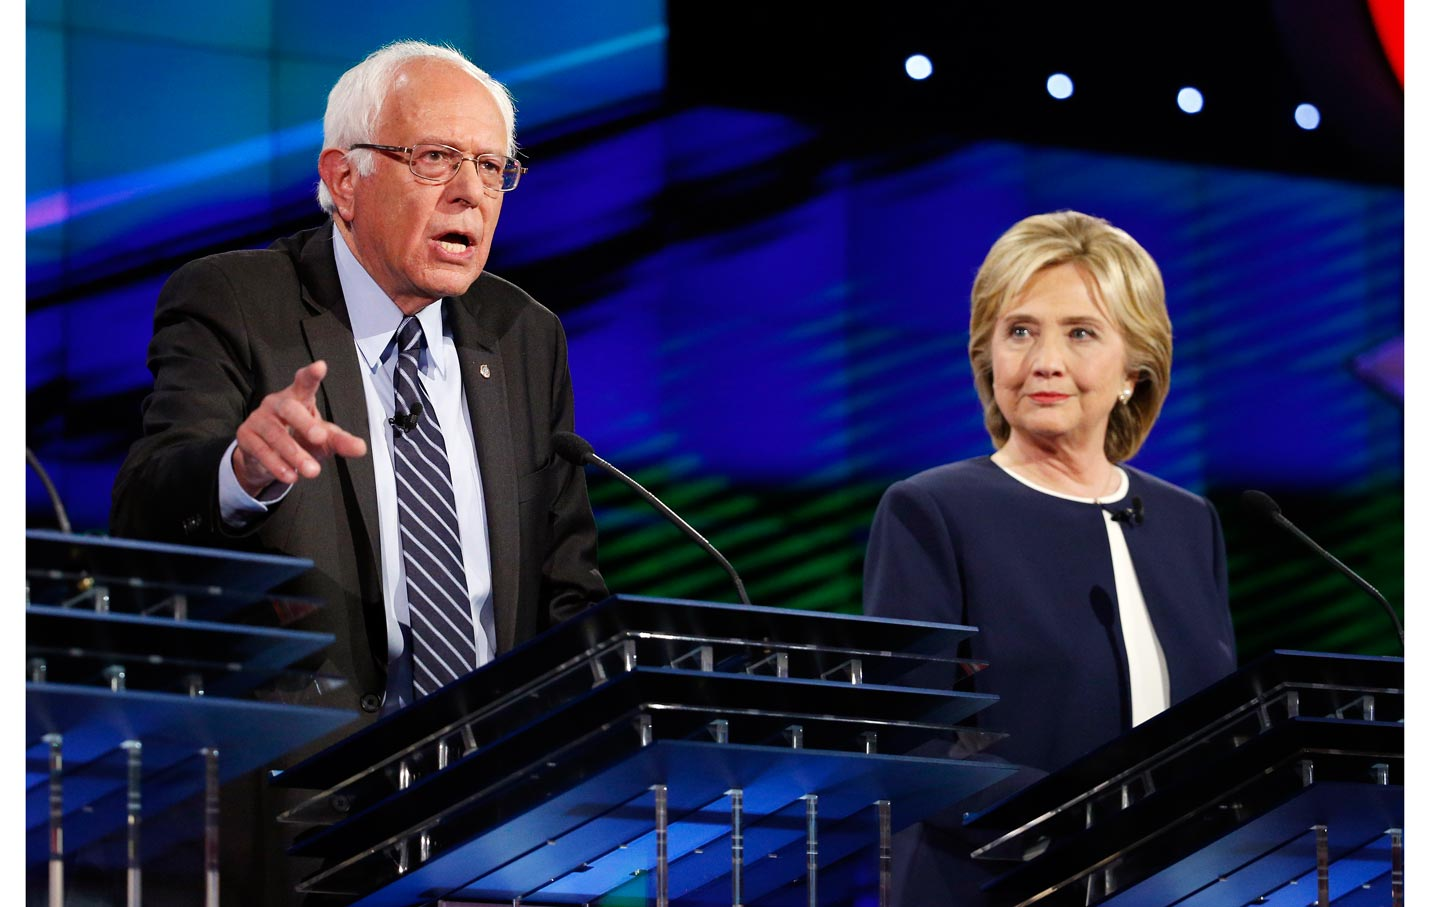 Clinton looks on as Sanders speaks during the Democratic debate on October 13, 2015.